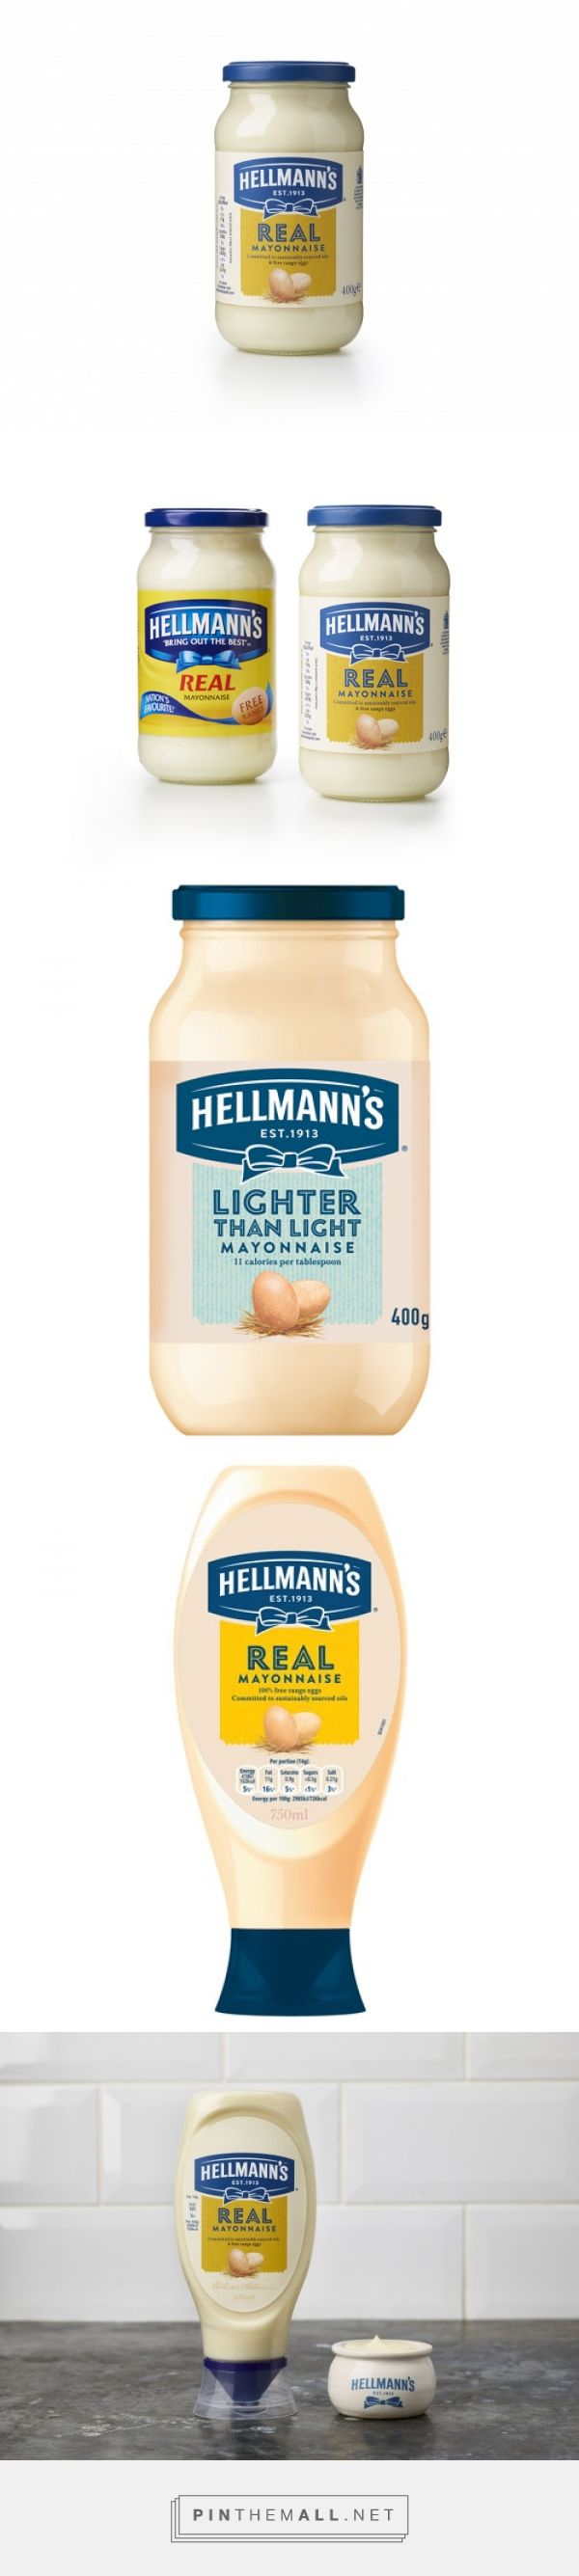 Hellmann's rebrand by Design Bridge. Source: Design Week. Pin curated by #SFields99 #packaging #design #inspiration #ideas #rebrand #hellmanns #mayonnaise